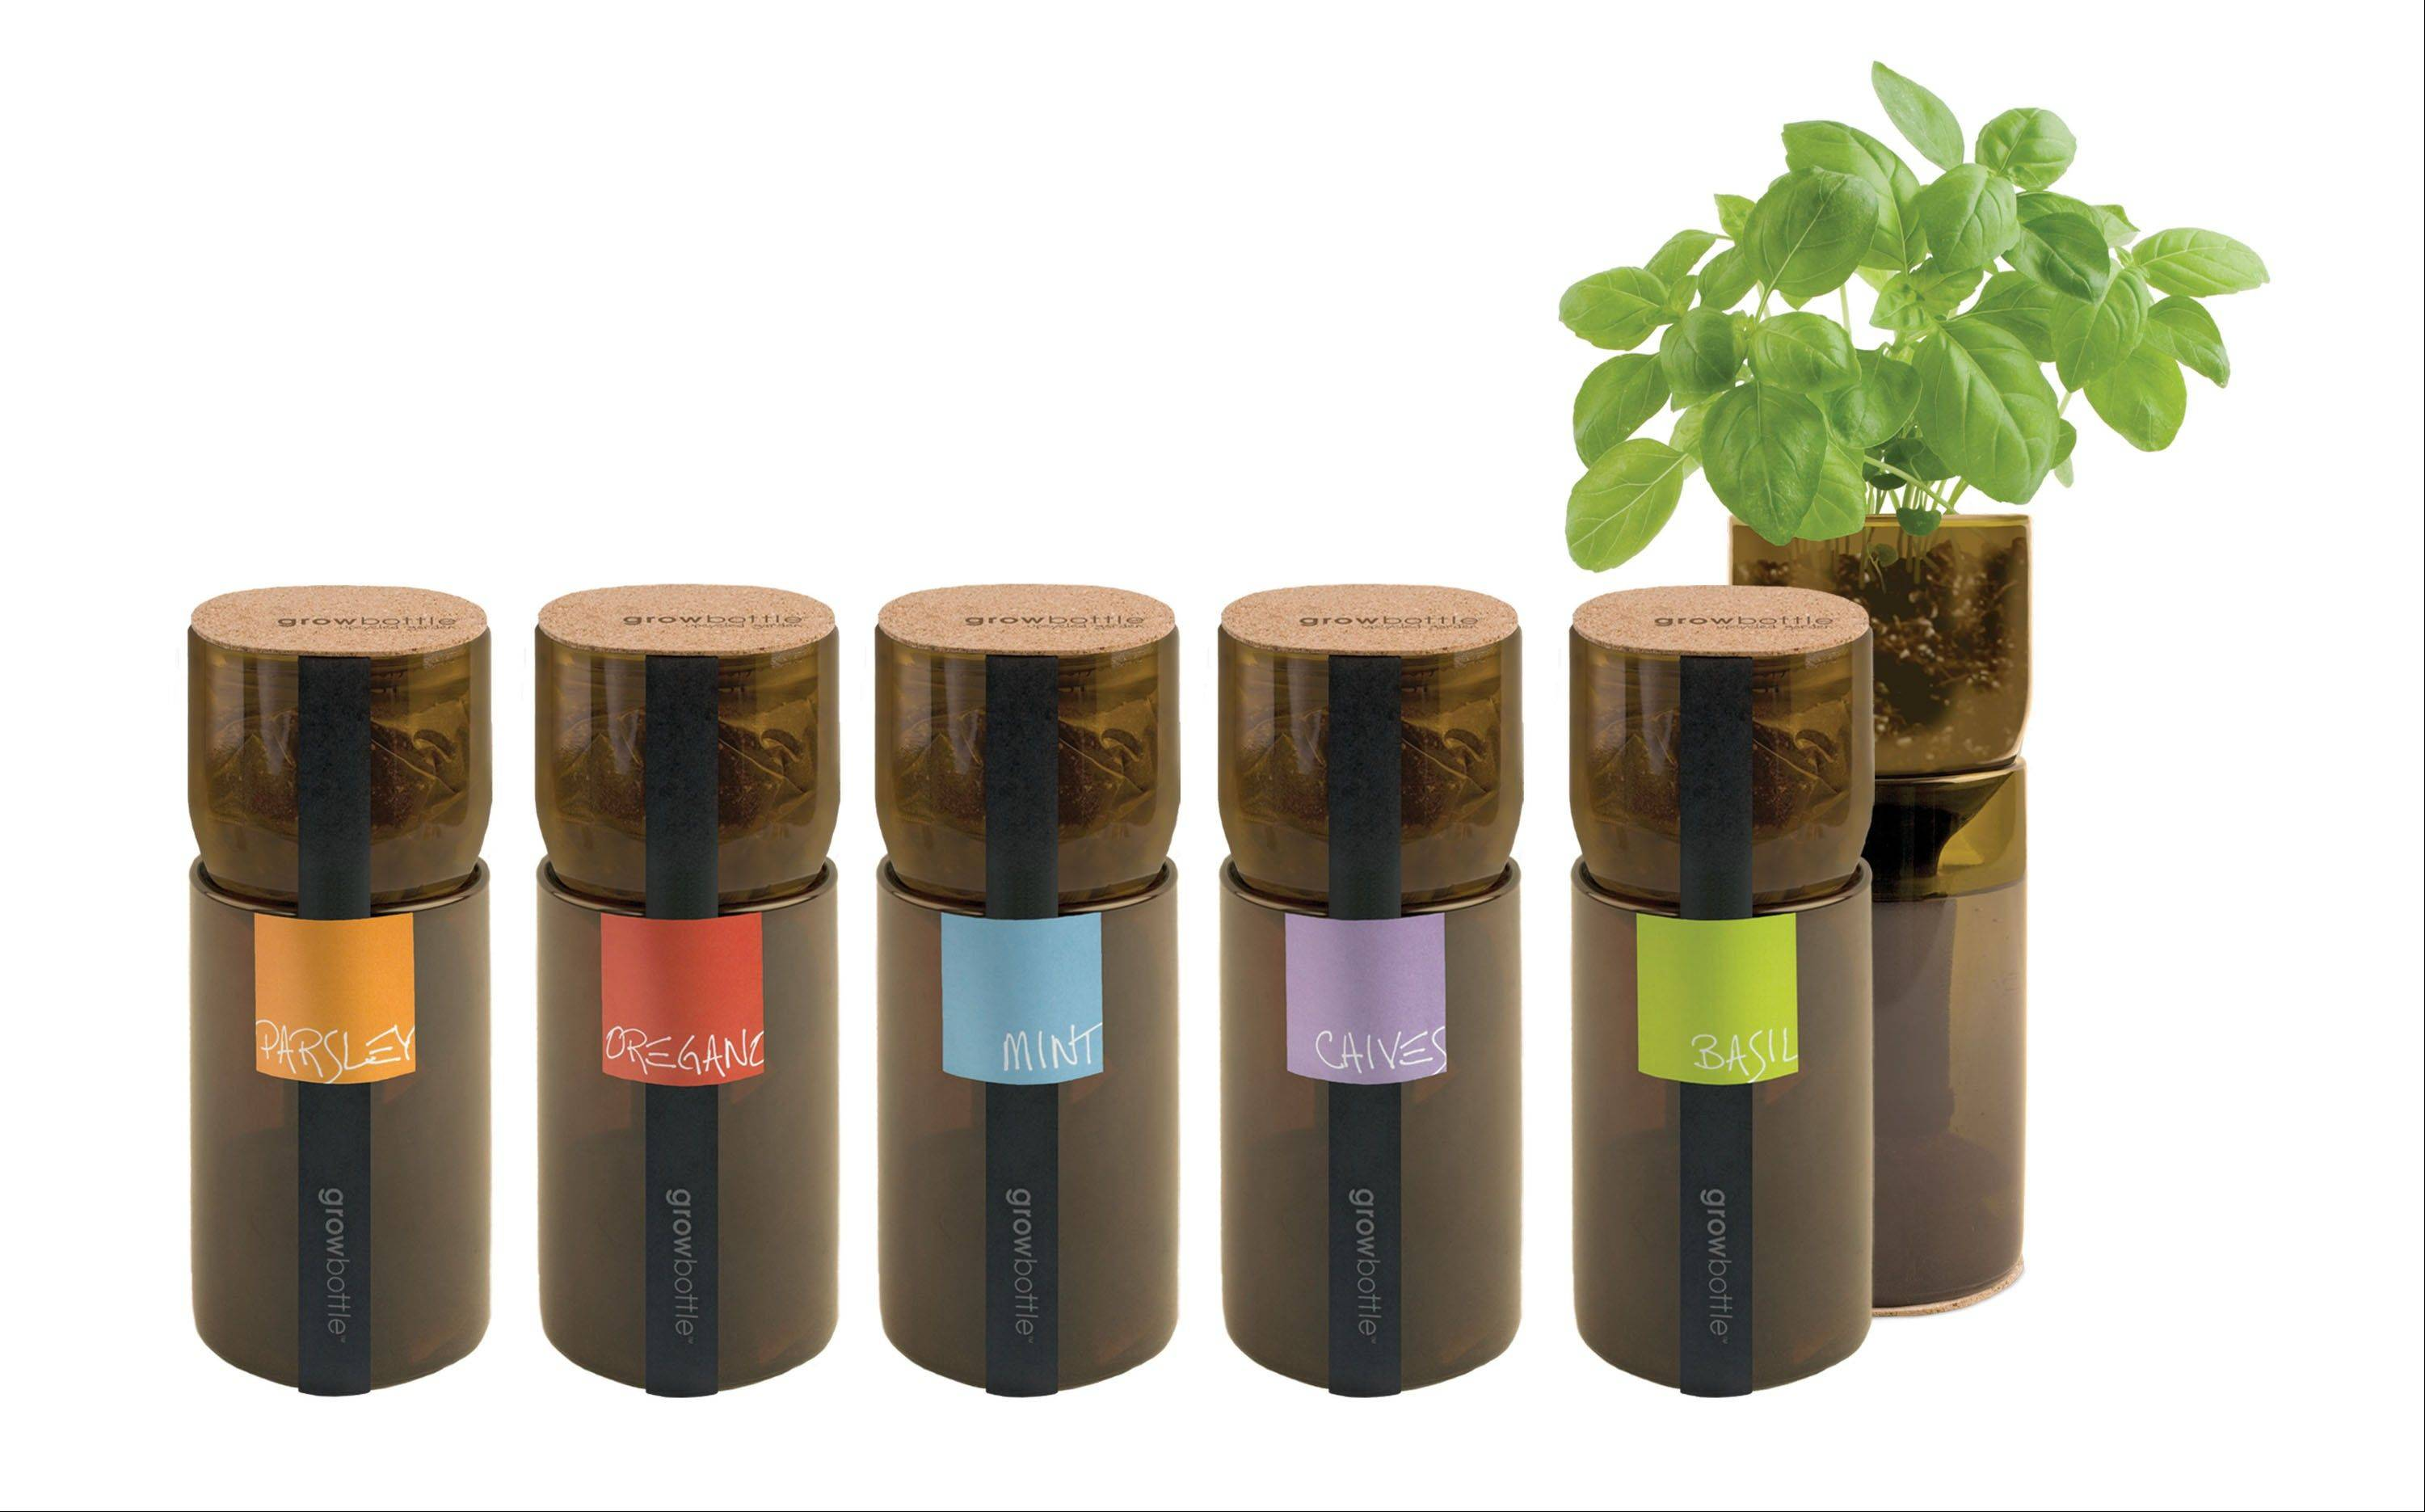 Try a unique gift for the wine-lover in your life. These grow bottles for herbs are made from reclaimed wine bottles.